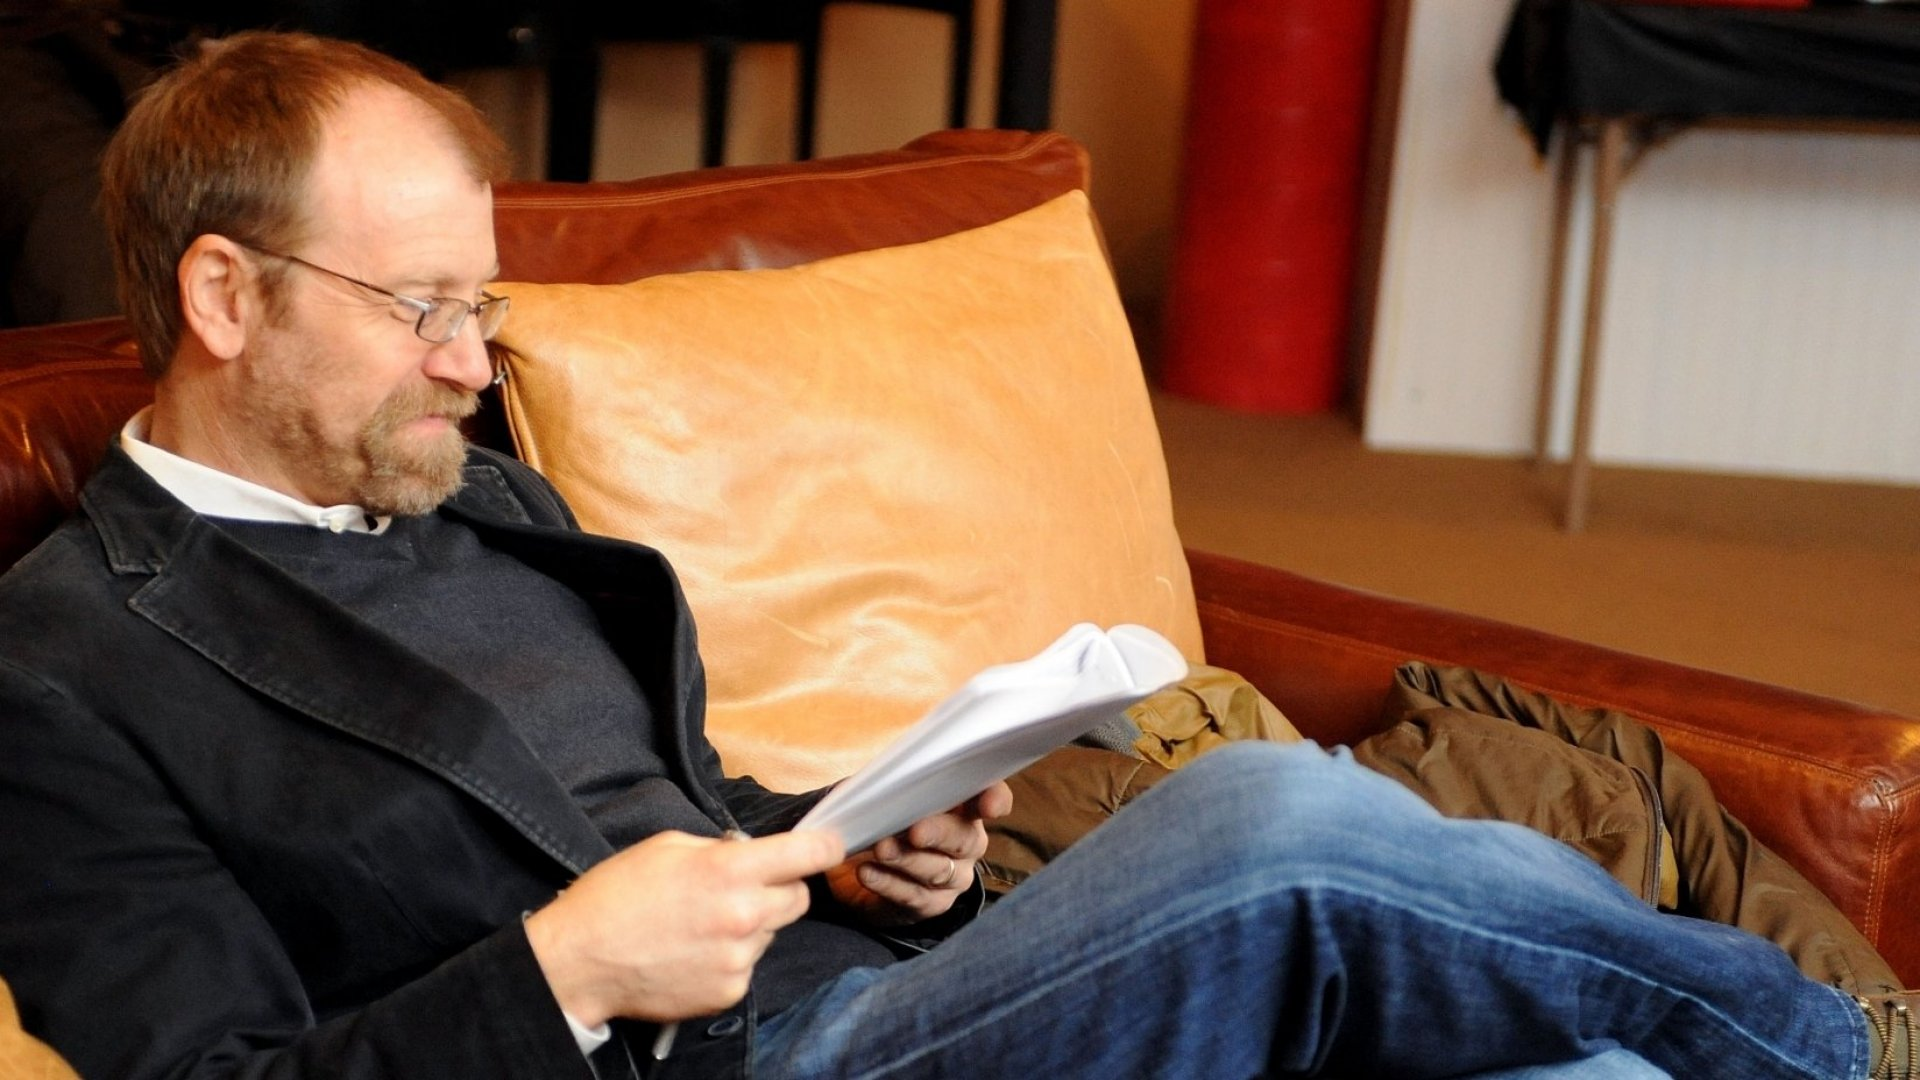 Prizewinning author George Saunders, seen here at the 2011 Sundance Film Festival, is grateful for the role his mentors have played.